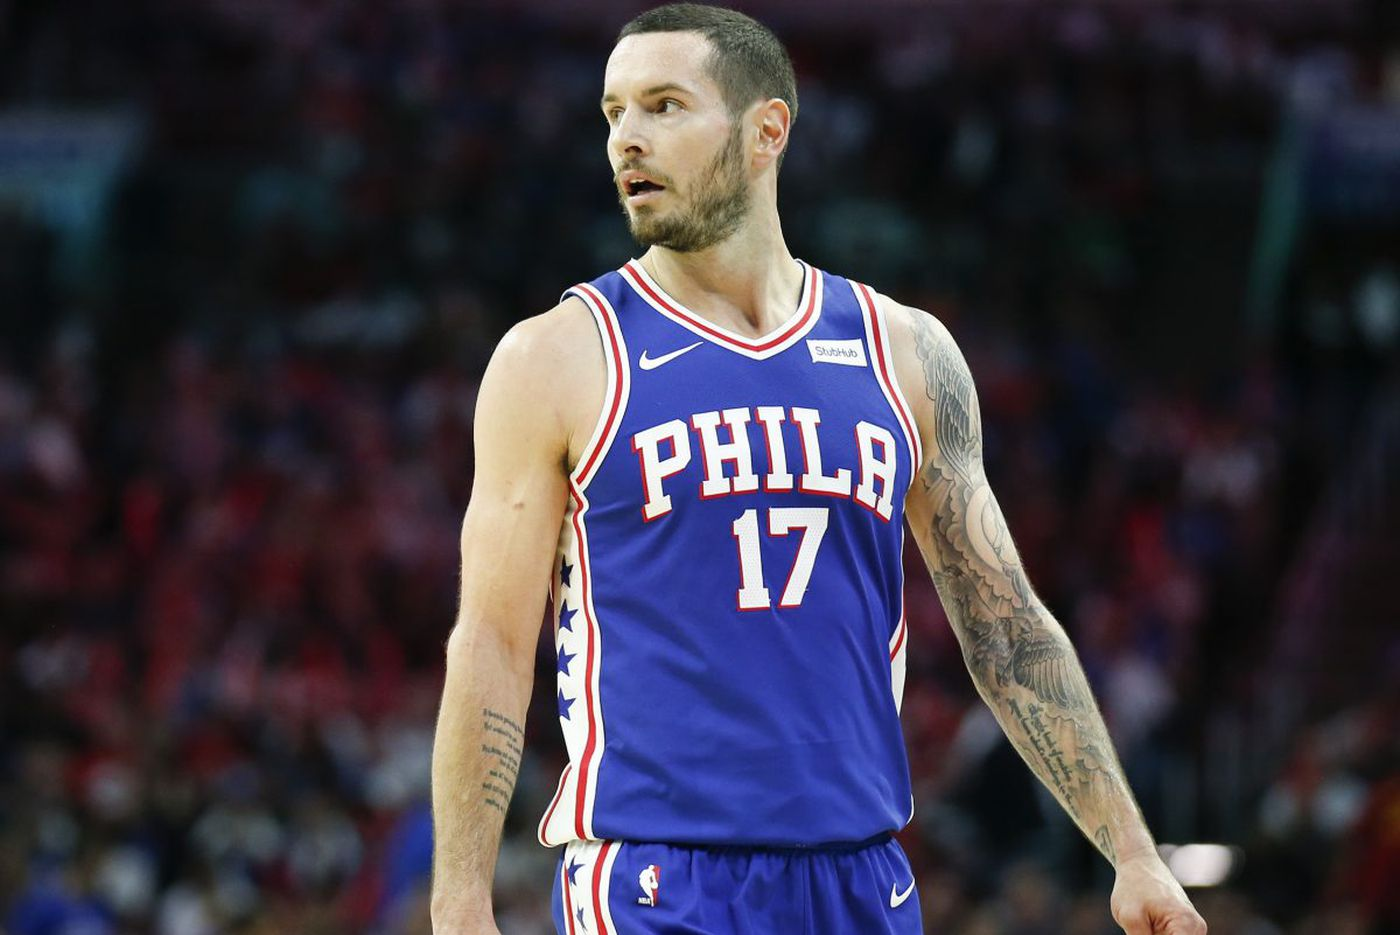 Sixers' JJ Redick reiterates his apology concerning purported racial slur